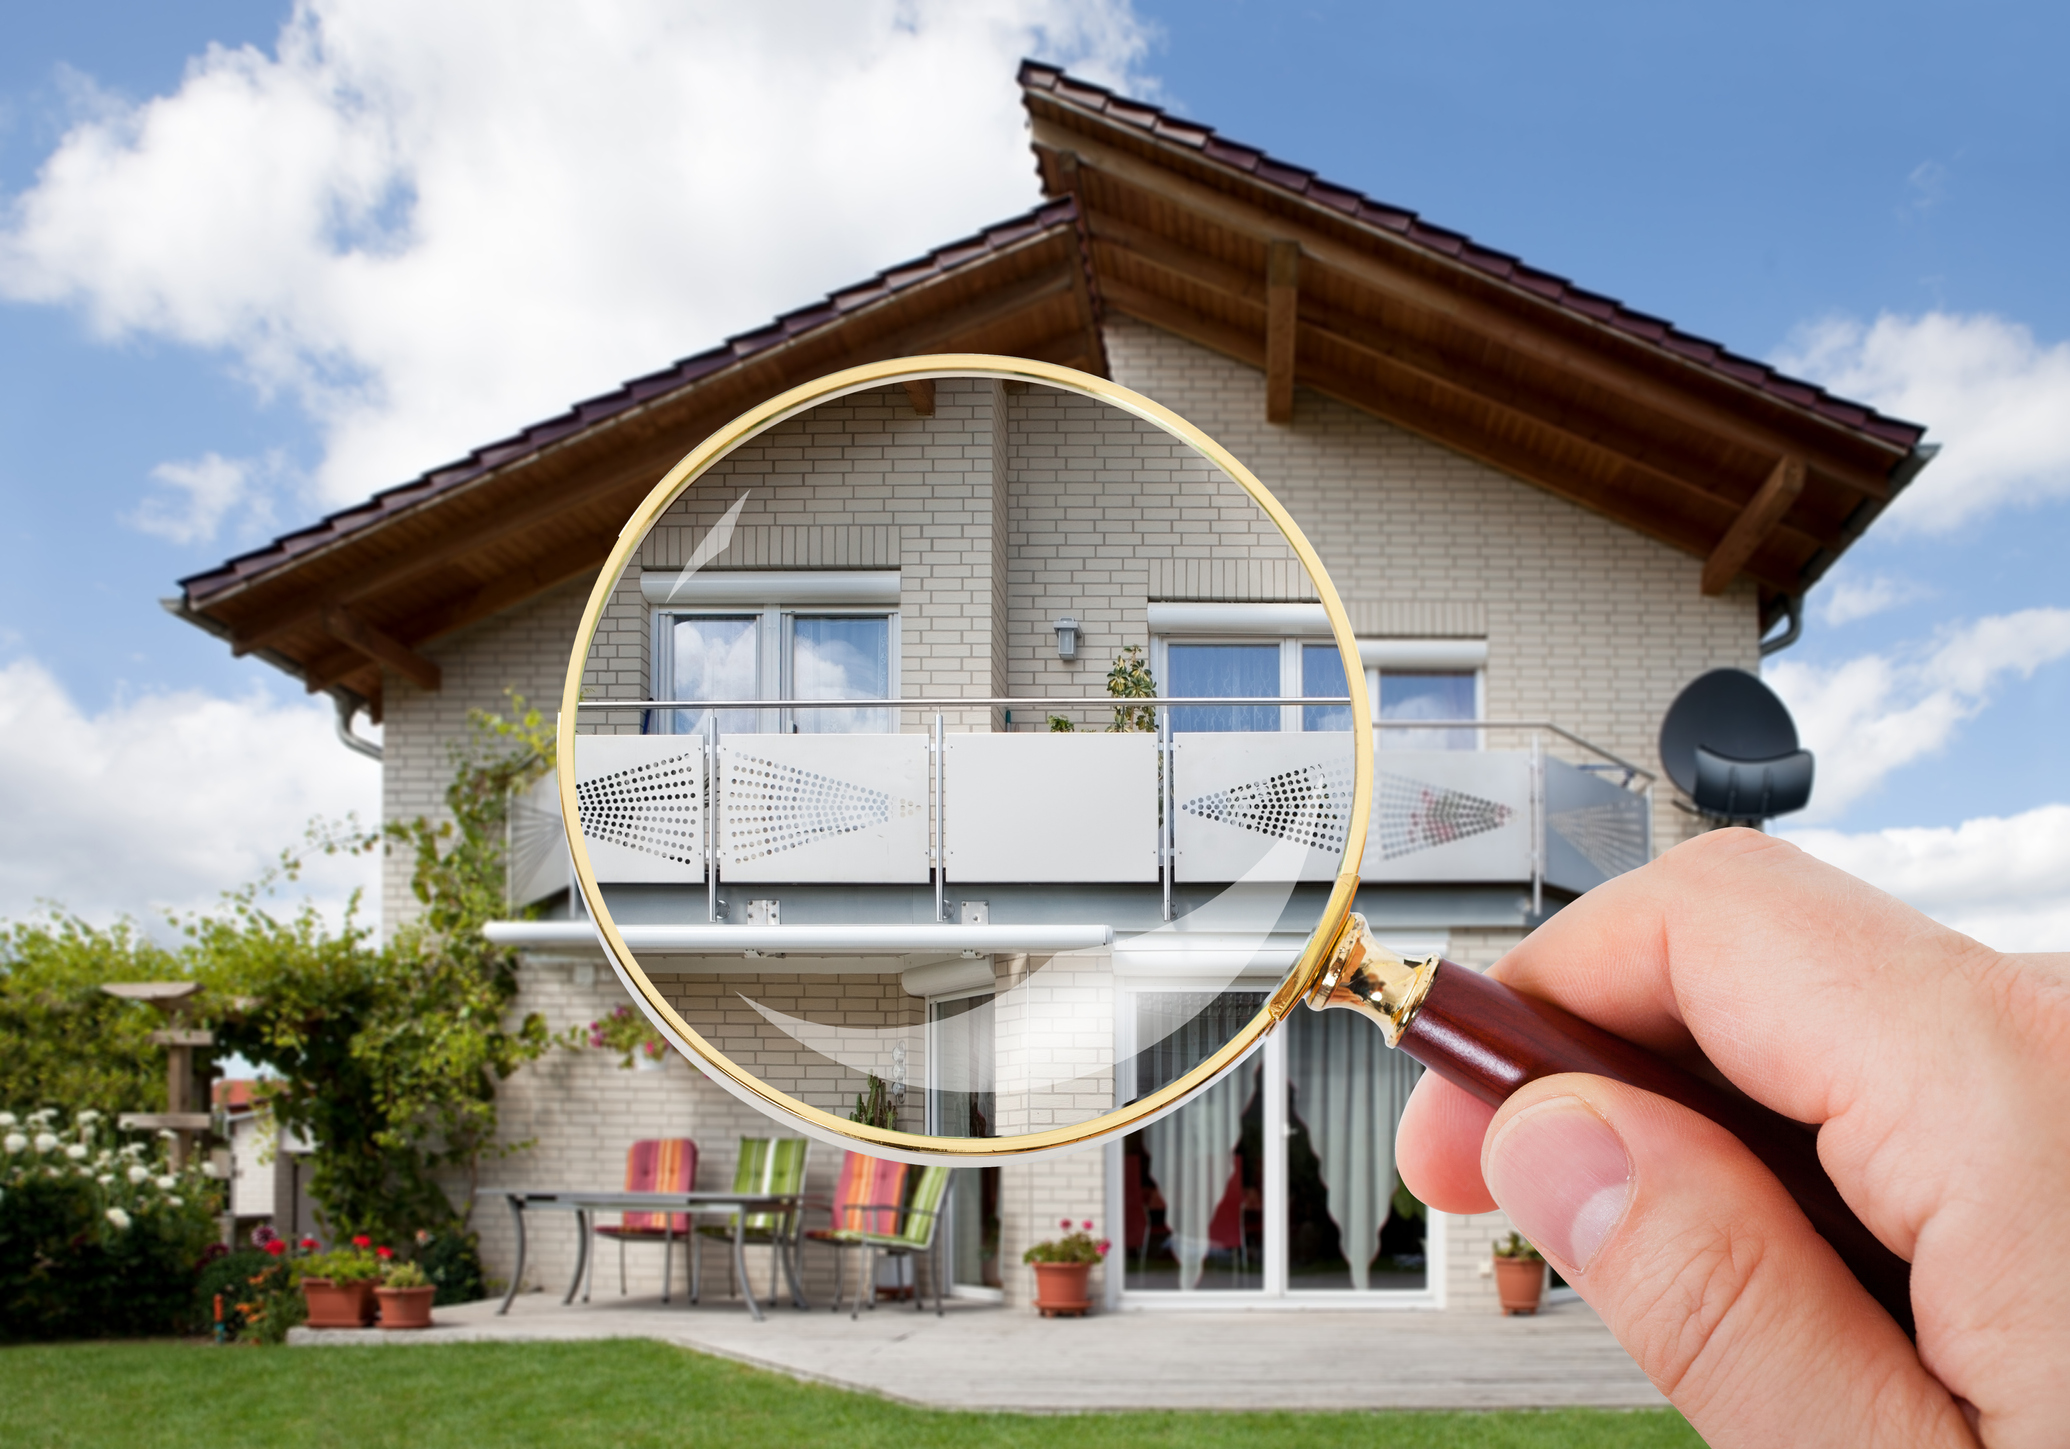 Services - What do our Building Inspections Include?